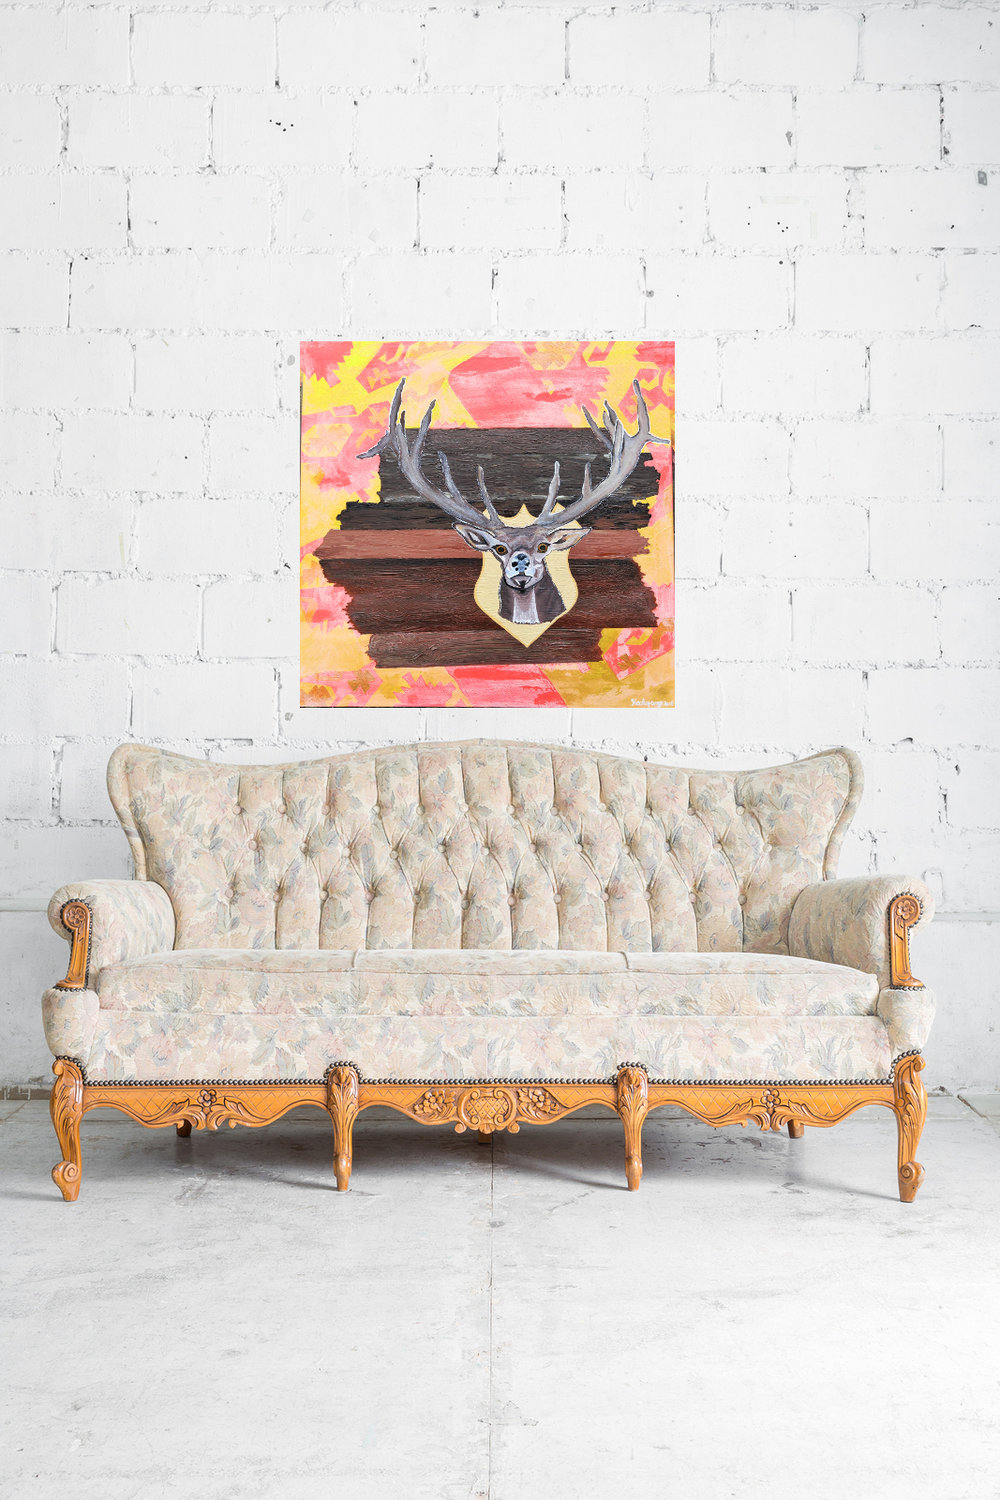 pink deerwood vintage sofa white brick wall.jpg